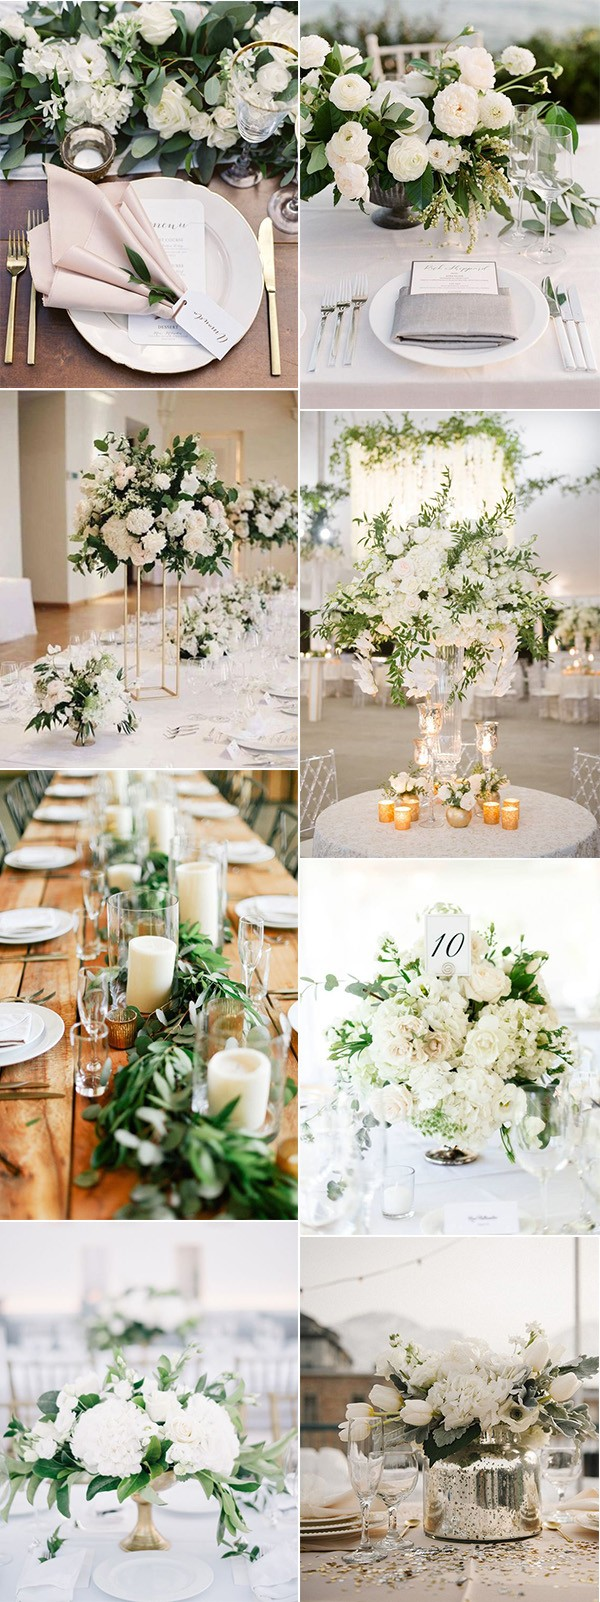 elegant neutral colors wedding centerpiece ideas